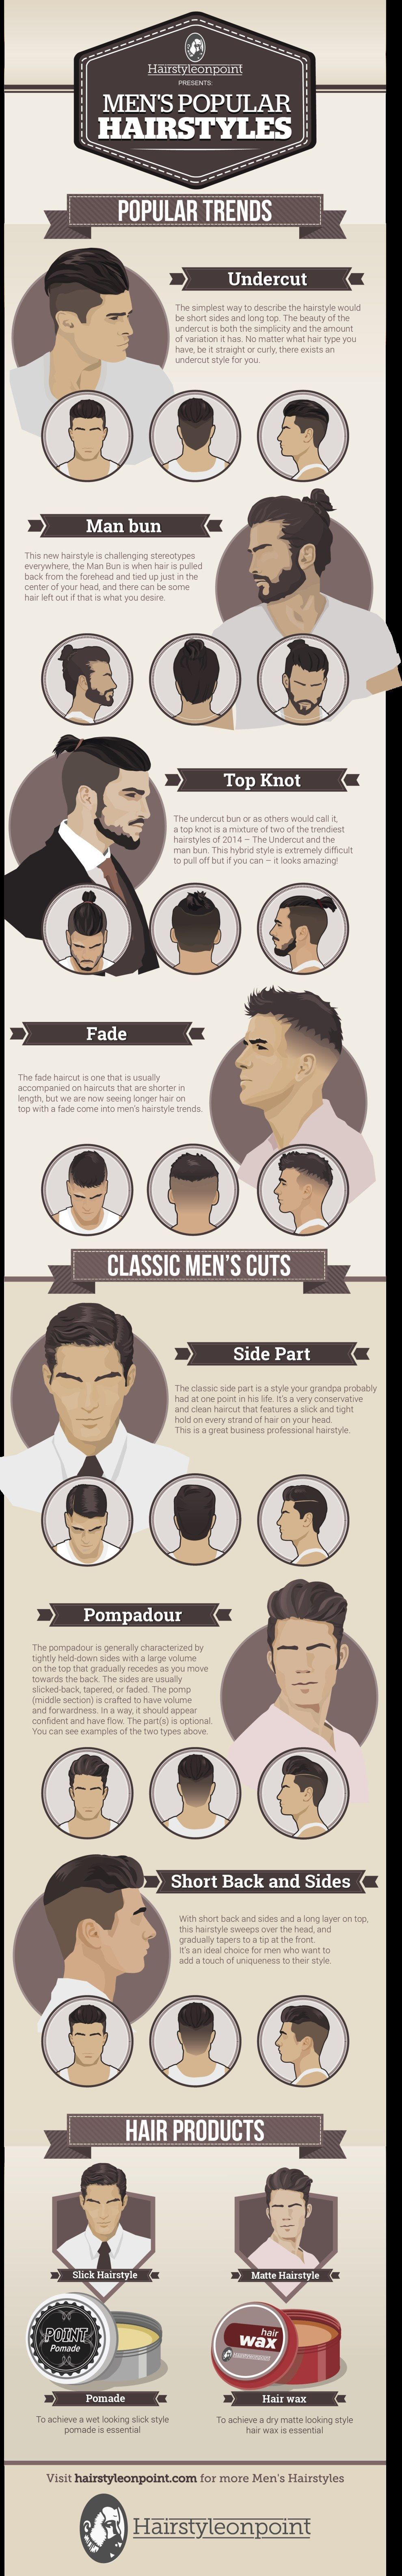 Mens haircut chart luckily menus style blog hairstyleonpoint created an amazing chart